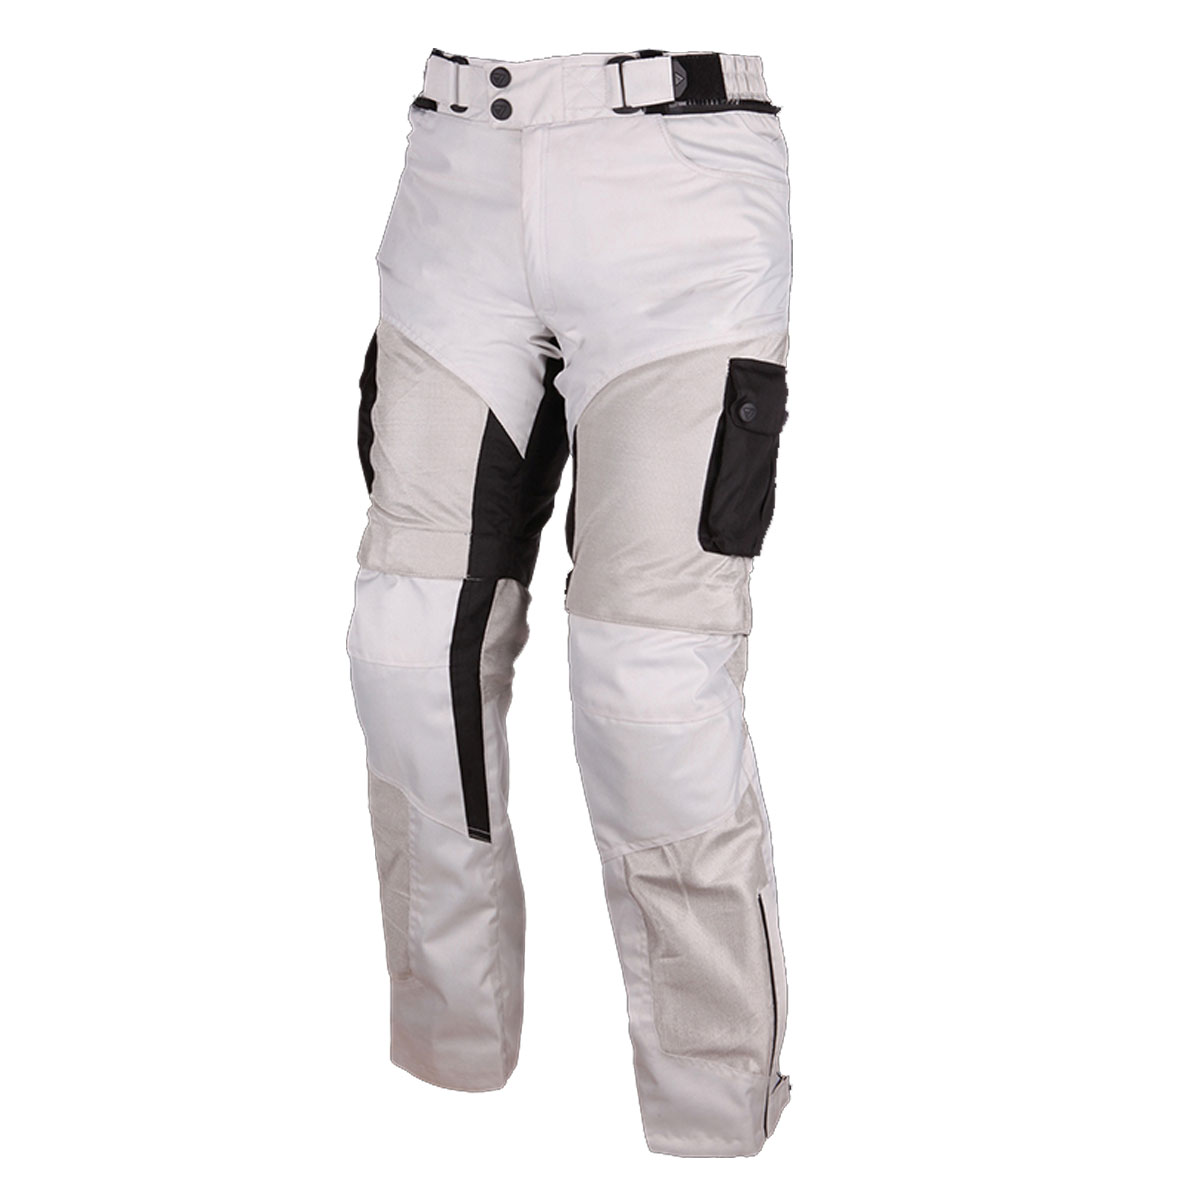 WHITE FEMALE CORDURA PANT